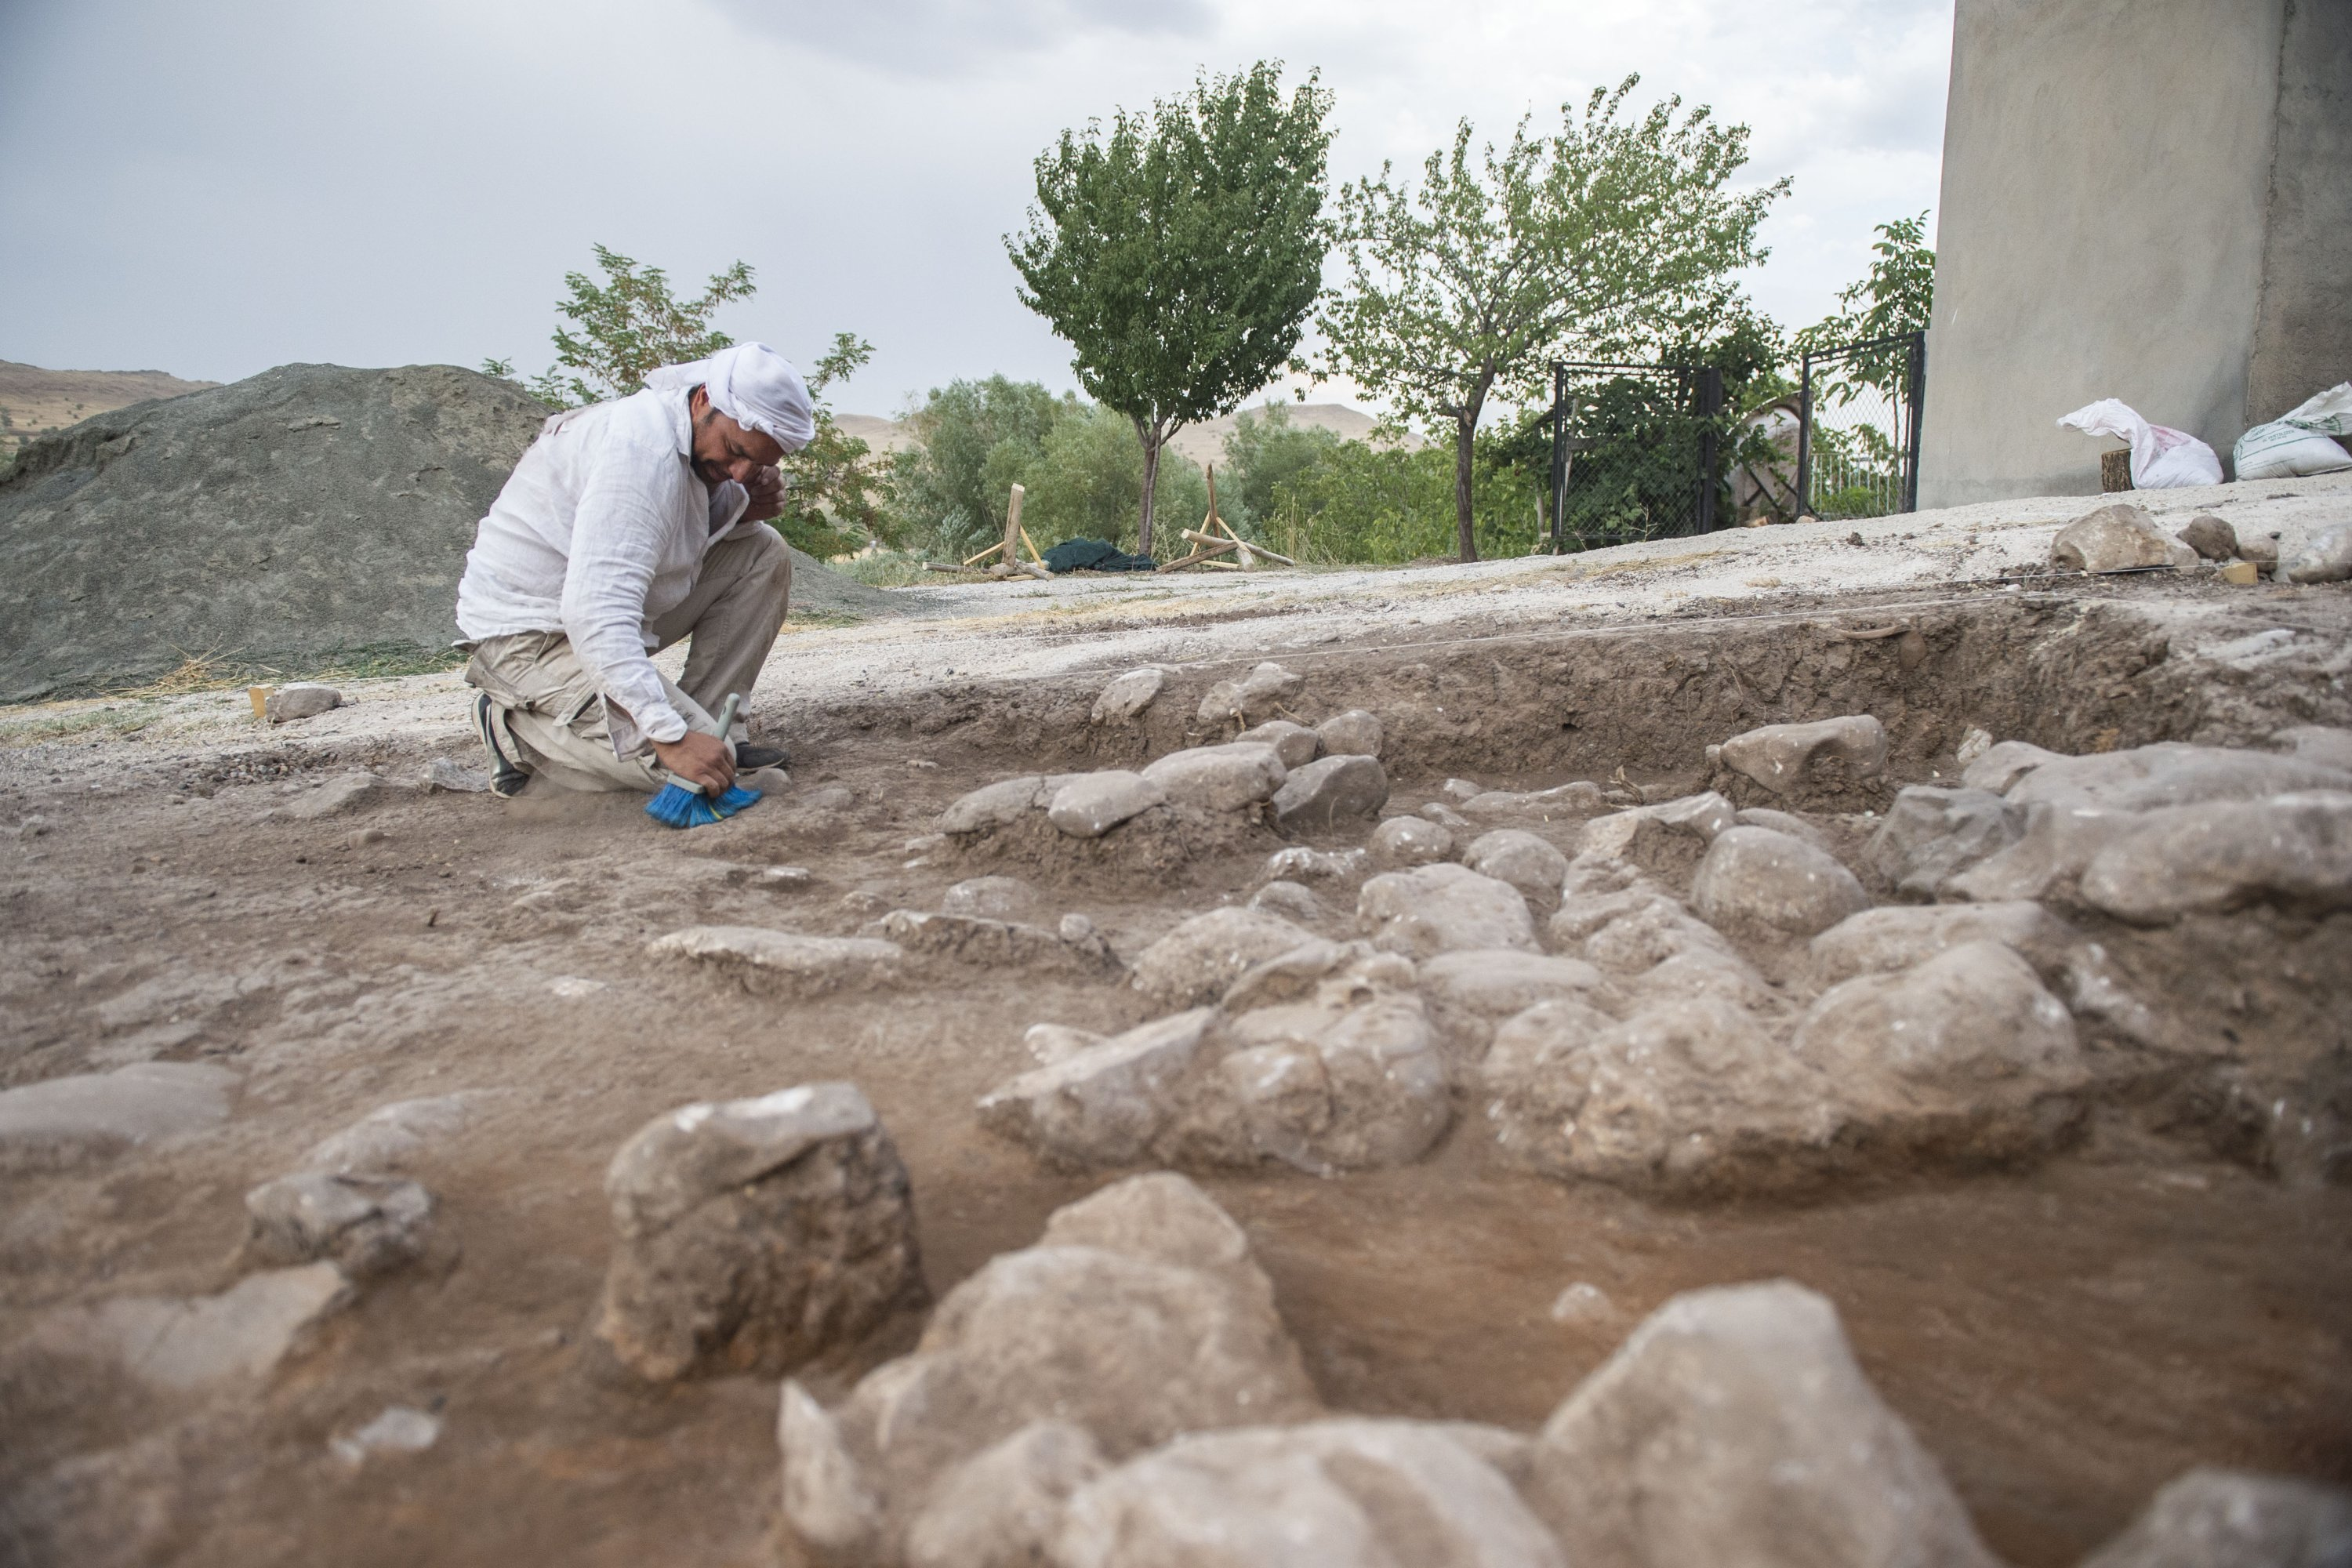 An archaeologist works during excavations at the Tozkoparan Mound site in Tunceli, Turkey, Aug. 11, 2021. (AA Photo)